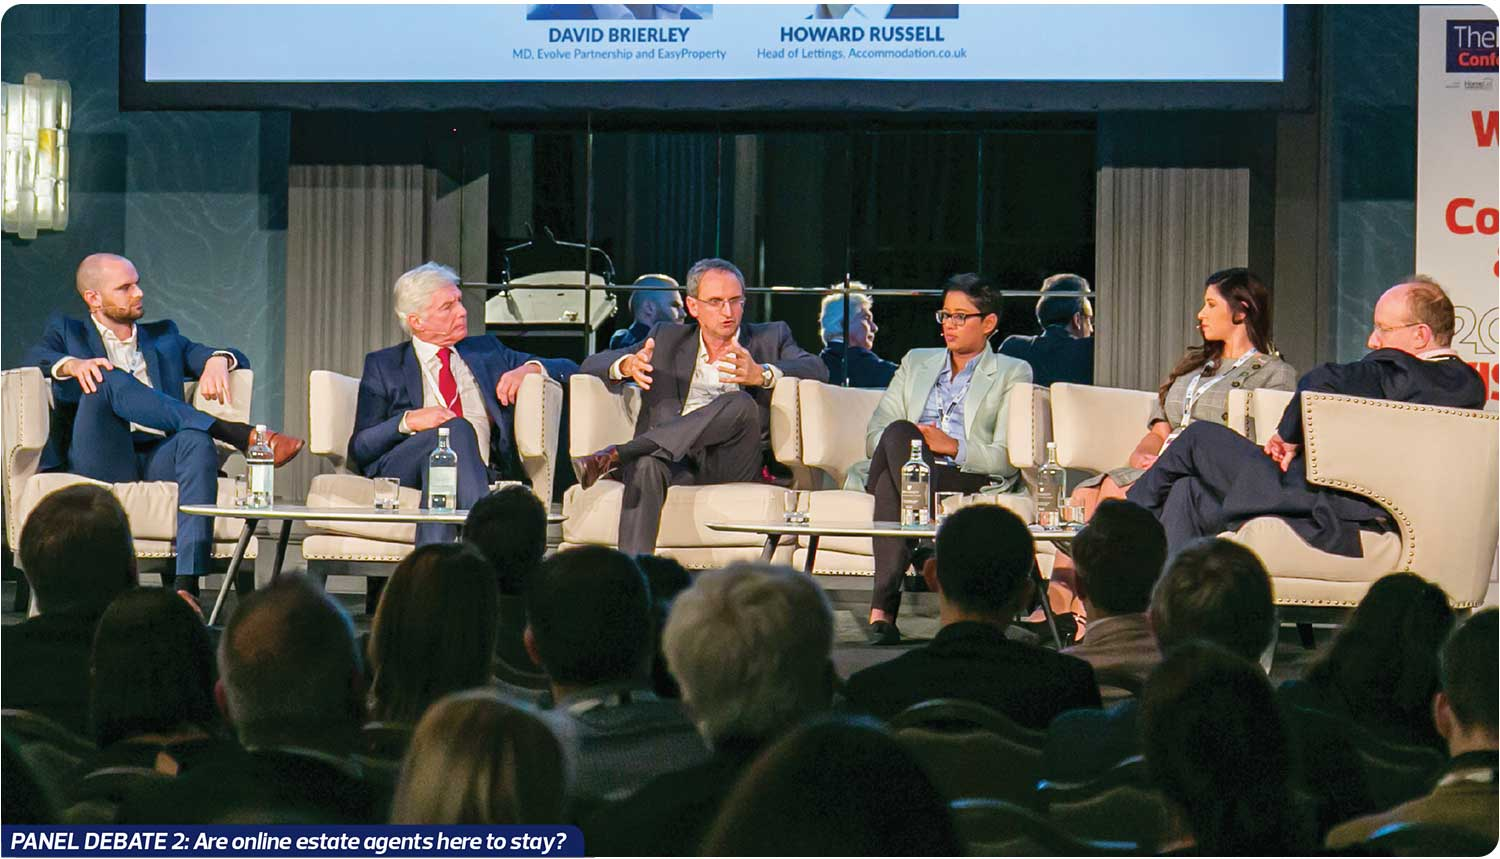 The Negotiator Conference for Estate Agents Letting Agents panel debate image